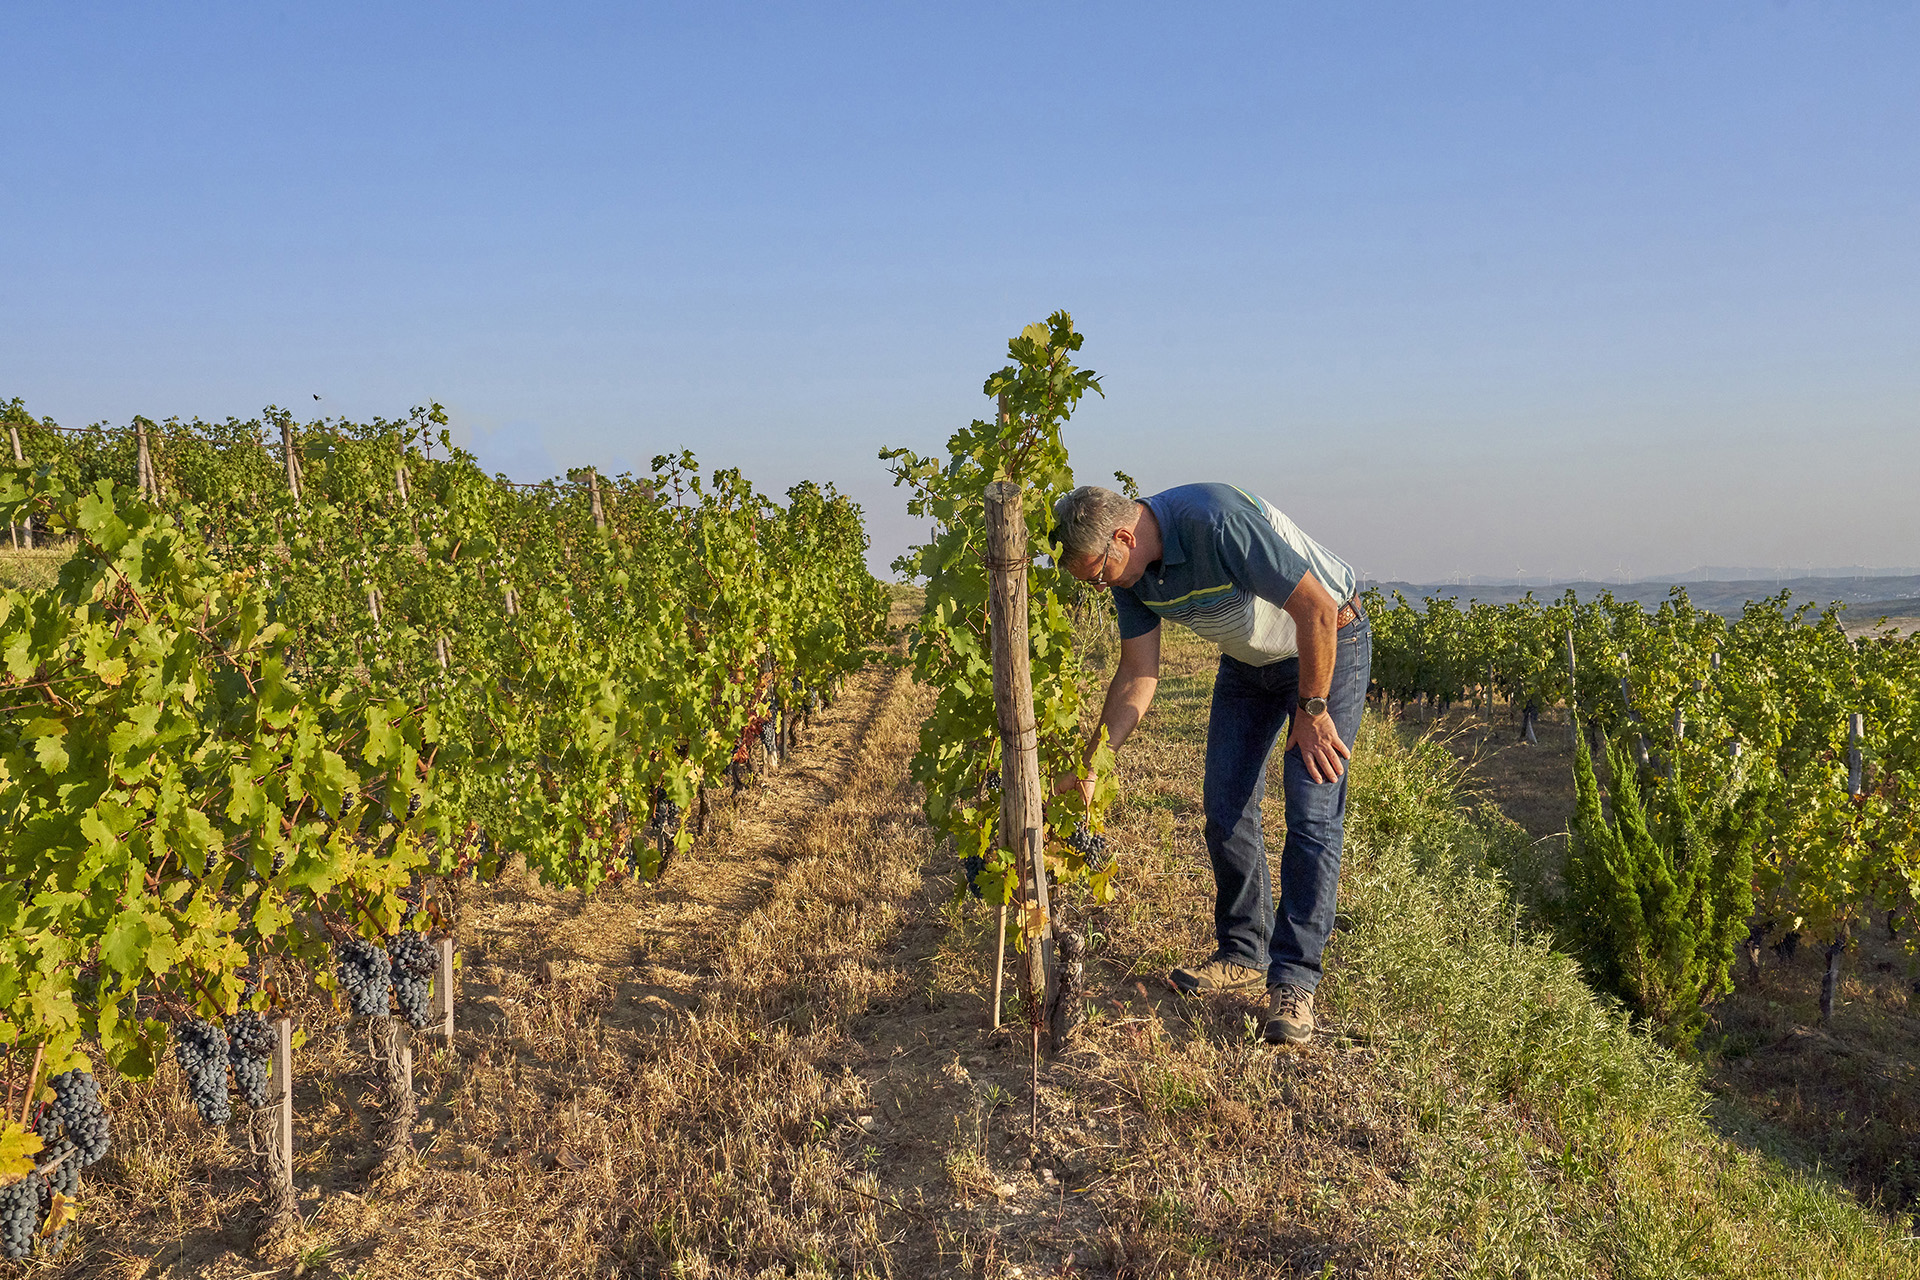 Trégoat on location in the vineyard / Photo by Richard Haughton